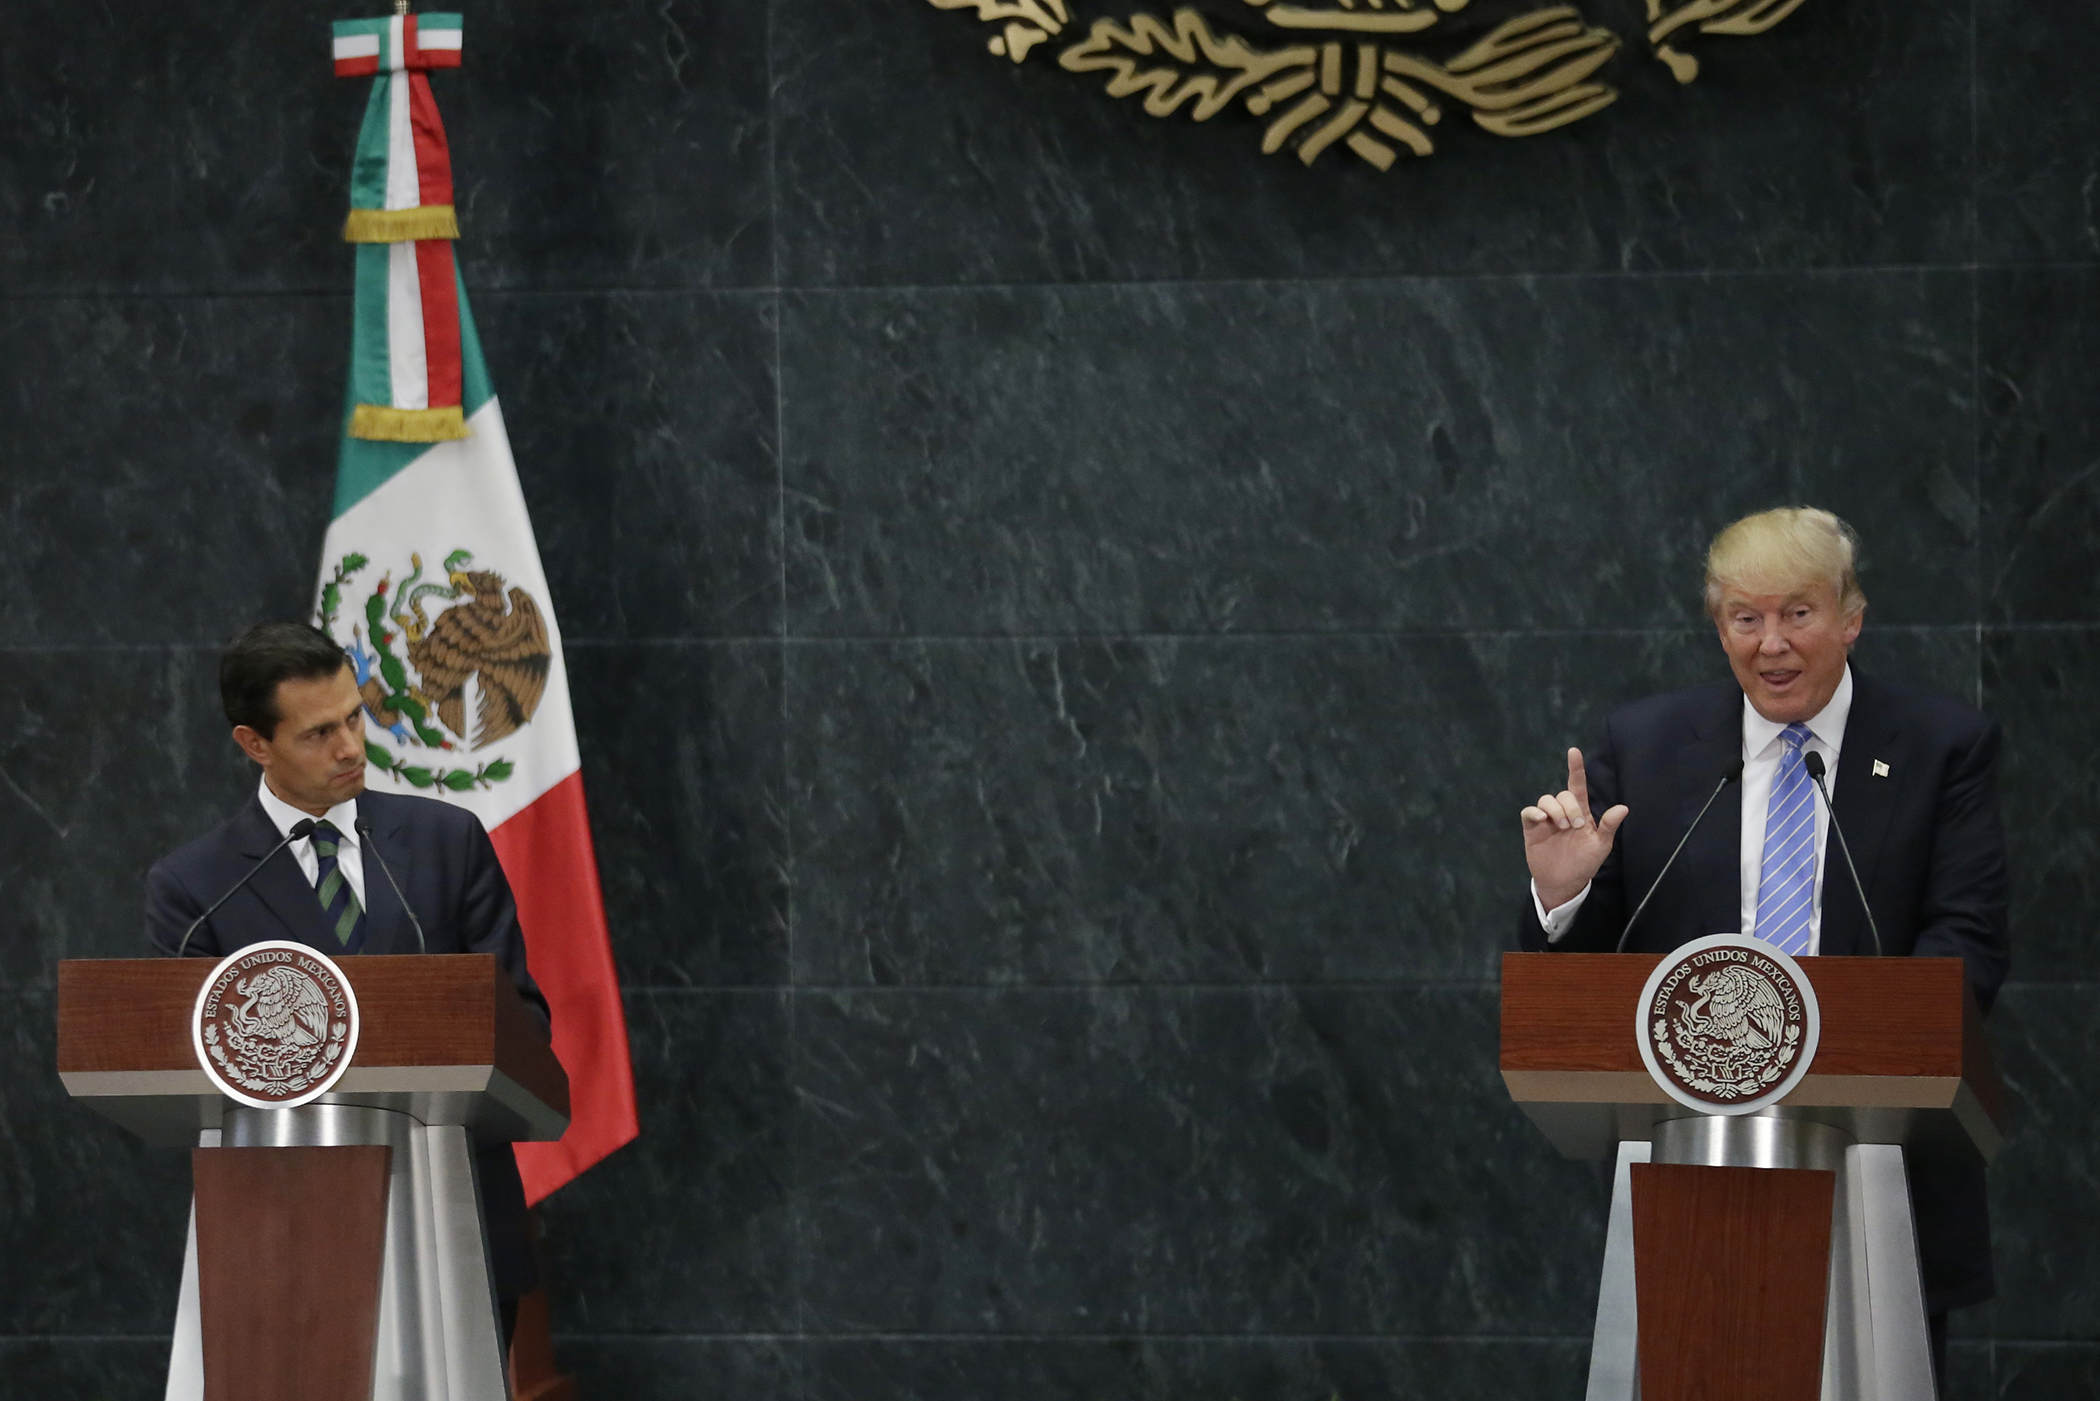 U.S. Republican presidential nominee Donald Trump and Mexico's President Enrique Pena Nieto give a press conference in Mexico City in August.